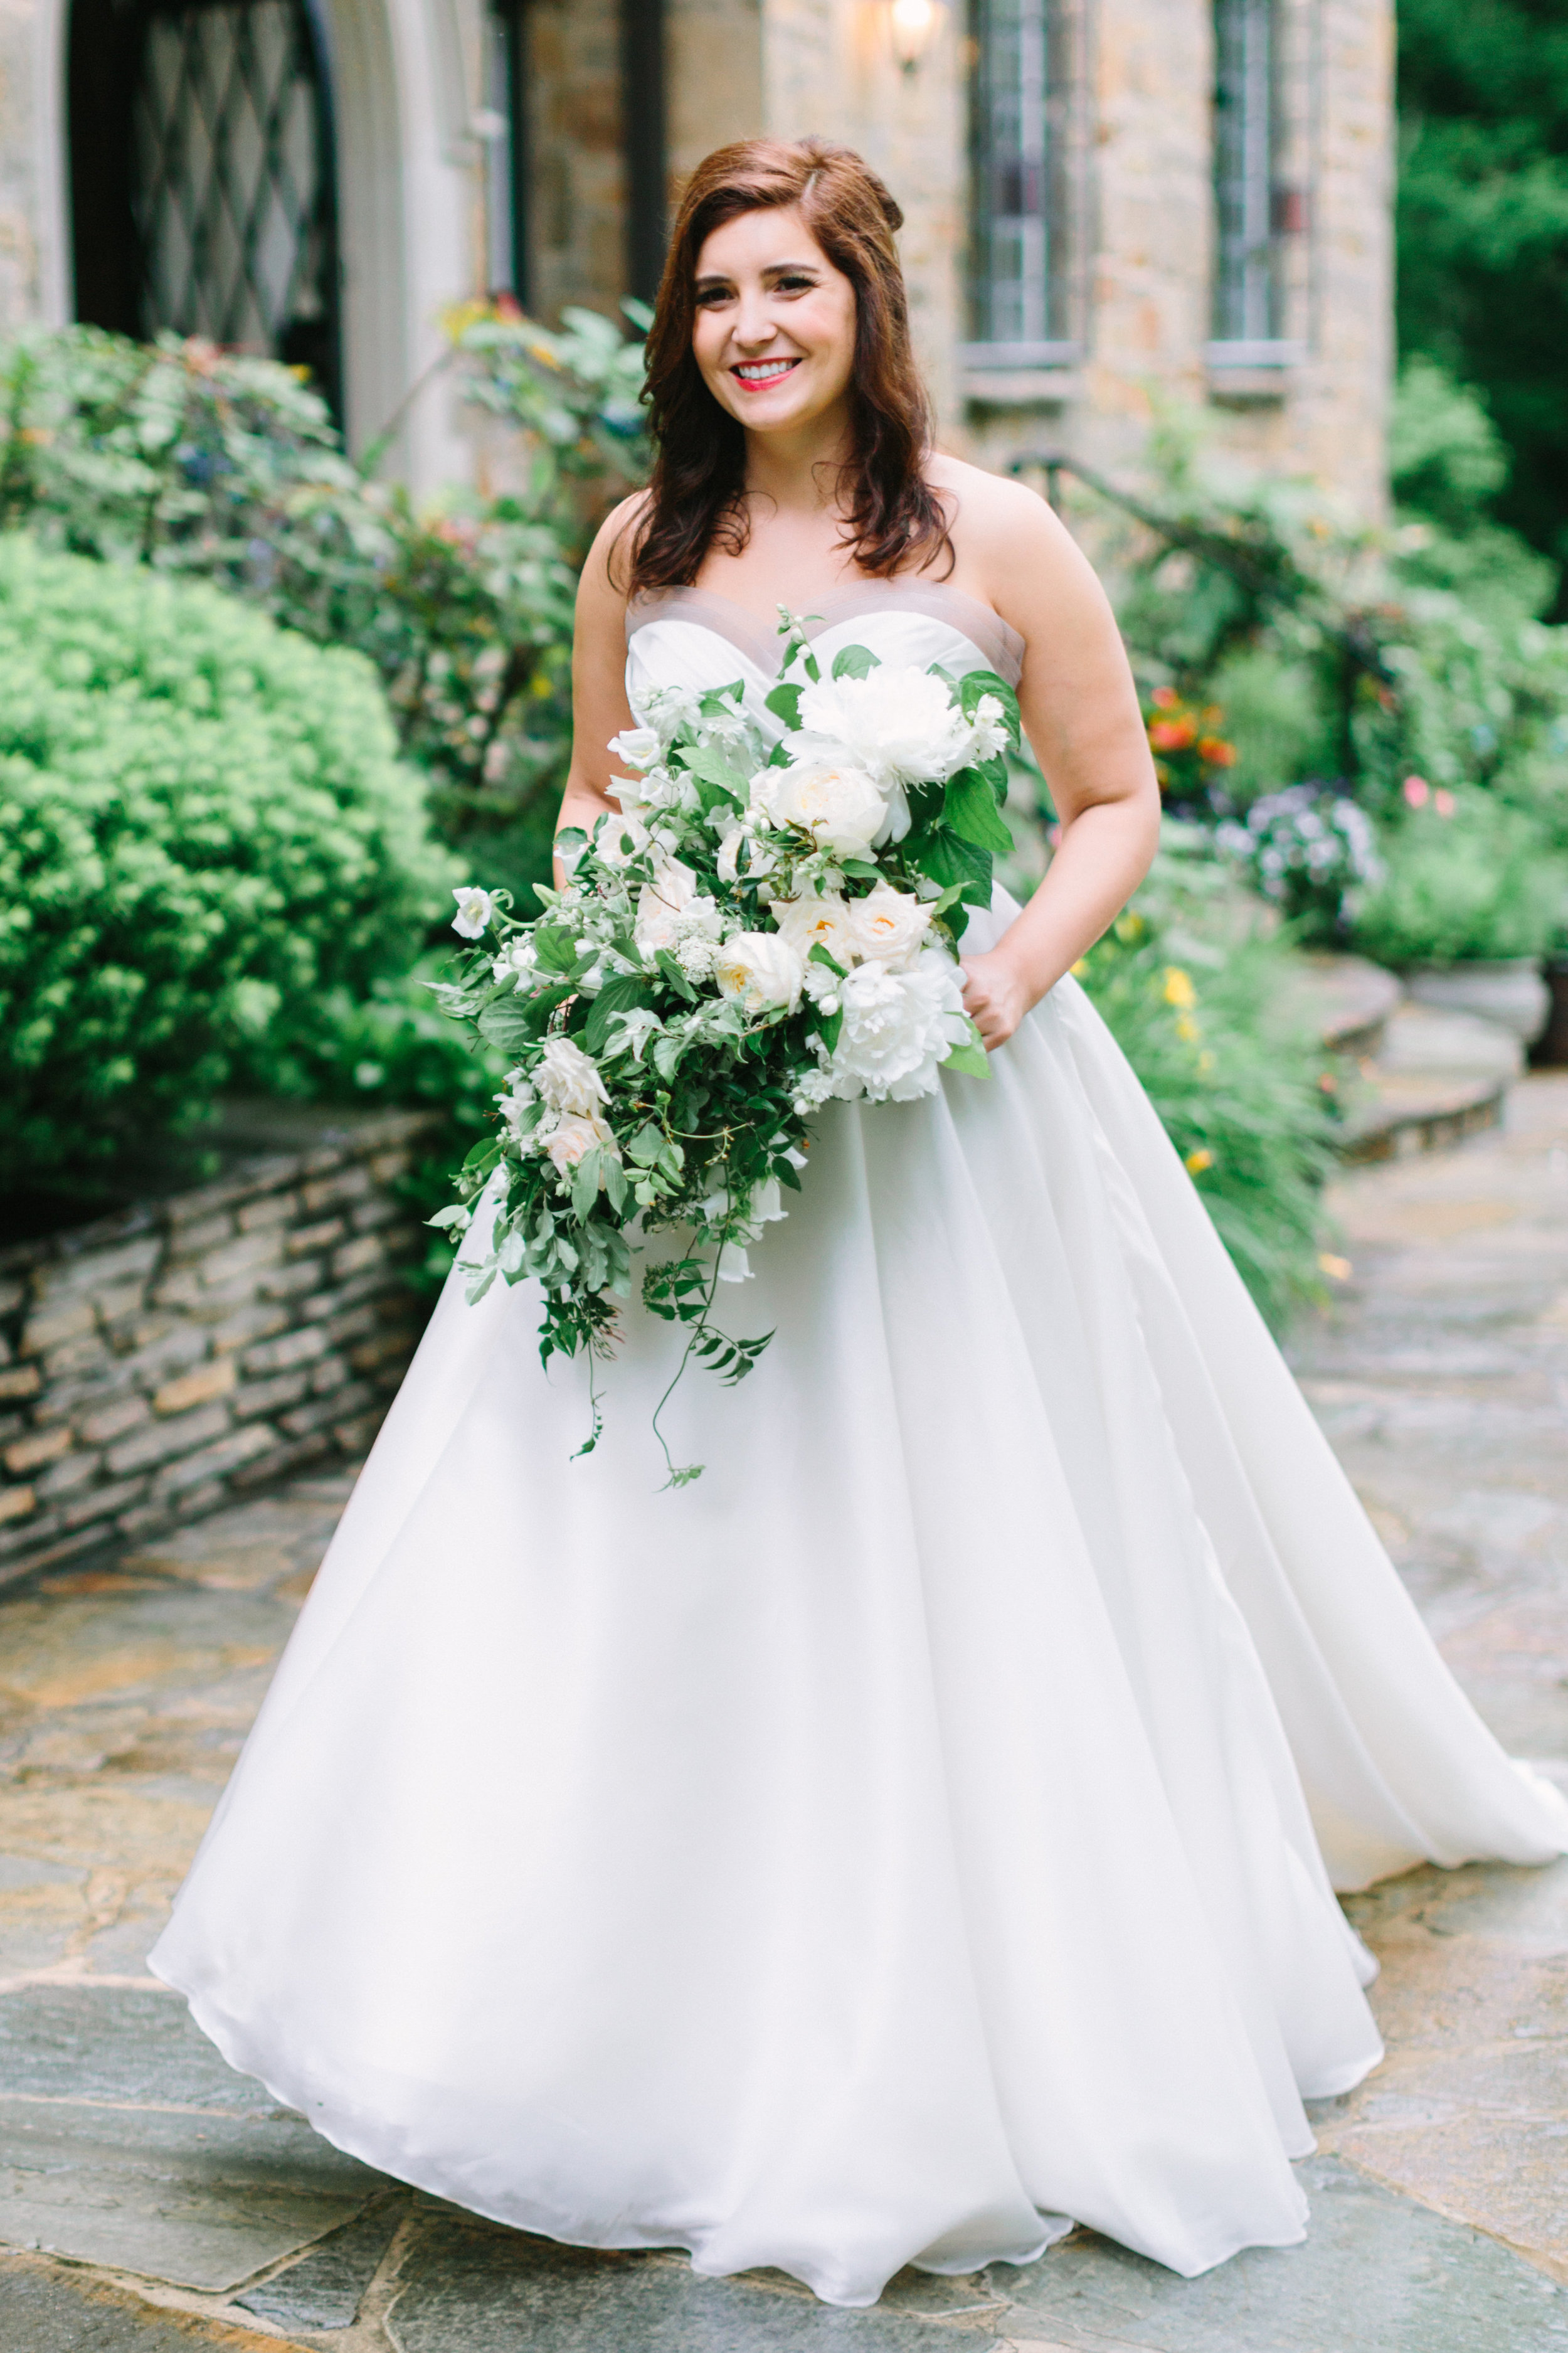 Cloisters Wedding by Nicki Metcalf Photography and East Made Event Company-0064.jpg